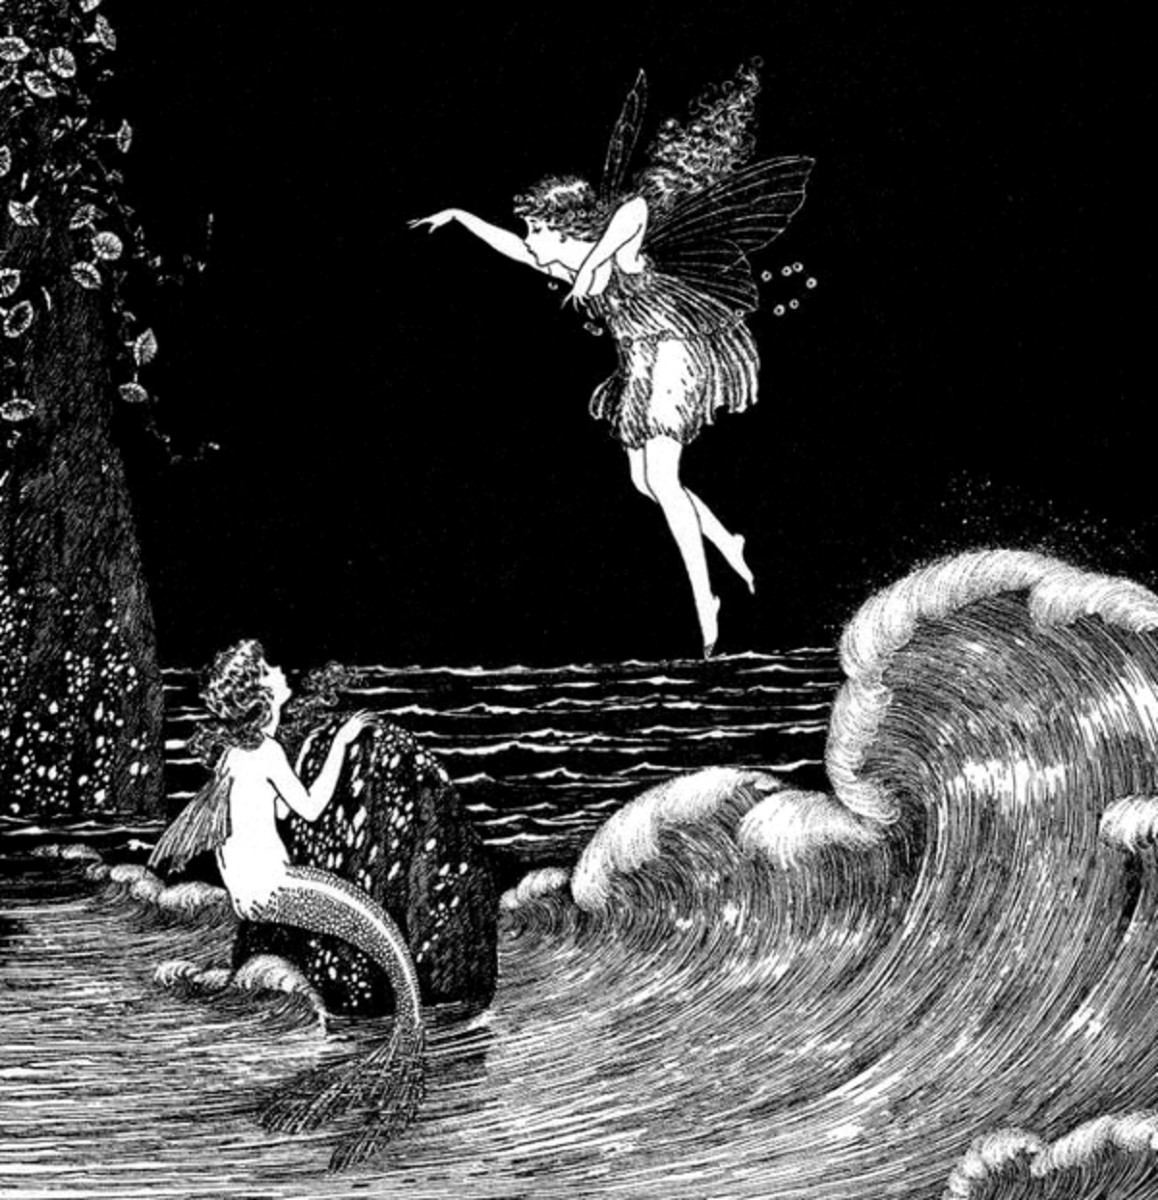 """Here we show a portion of 'Little Fairy Sisters' - it is from Ida Rentoul Outhwaite's suite published in """"Fairyland"""" (1926)."""